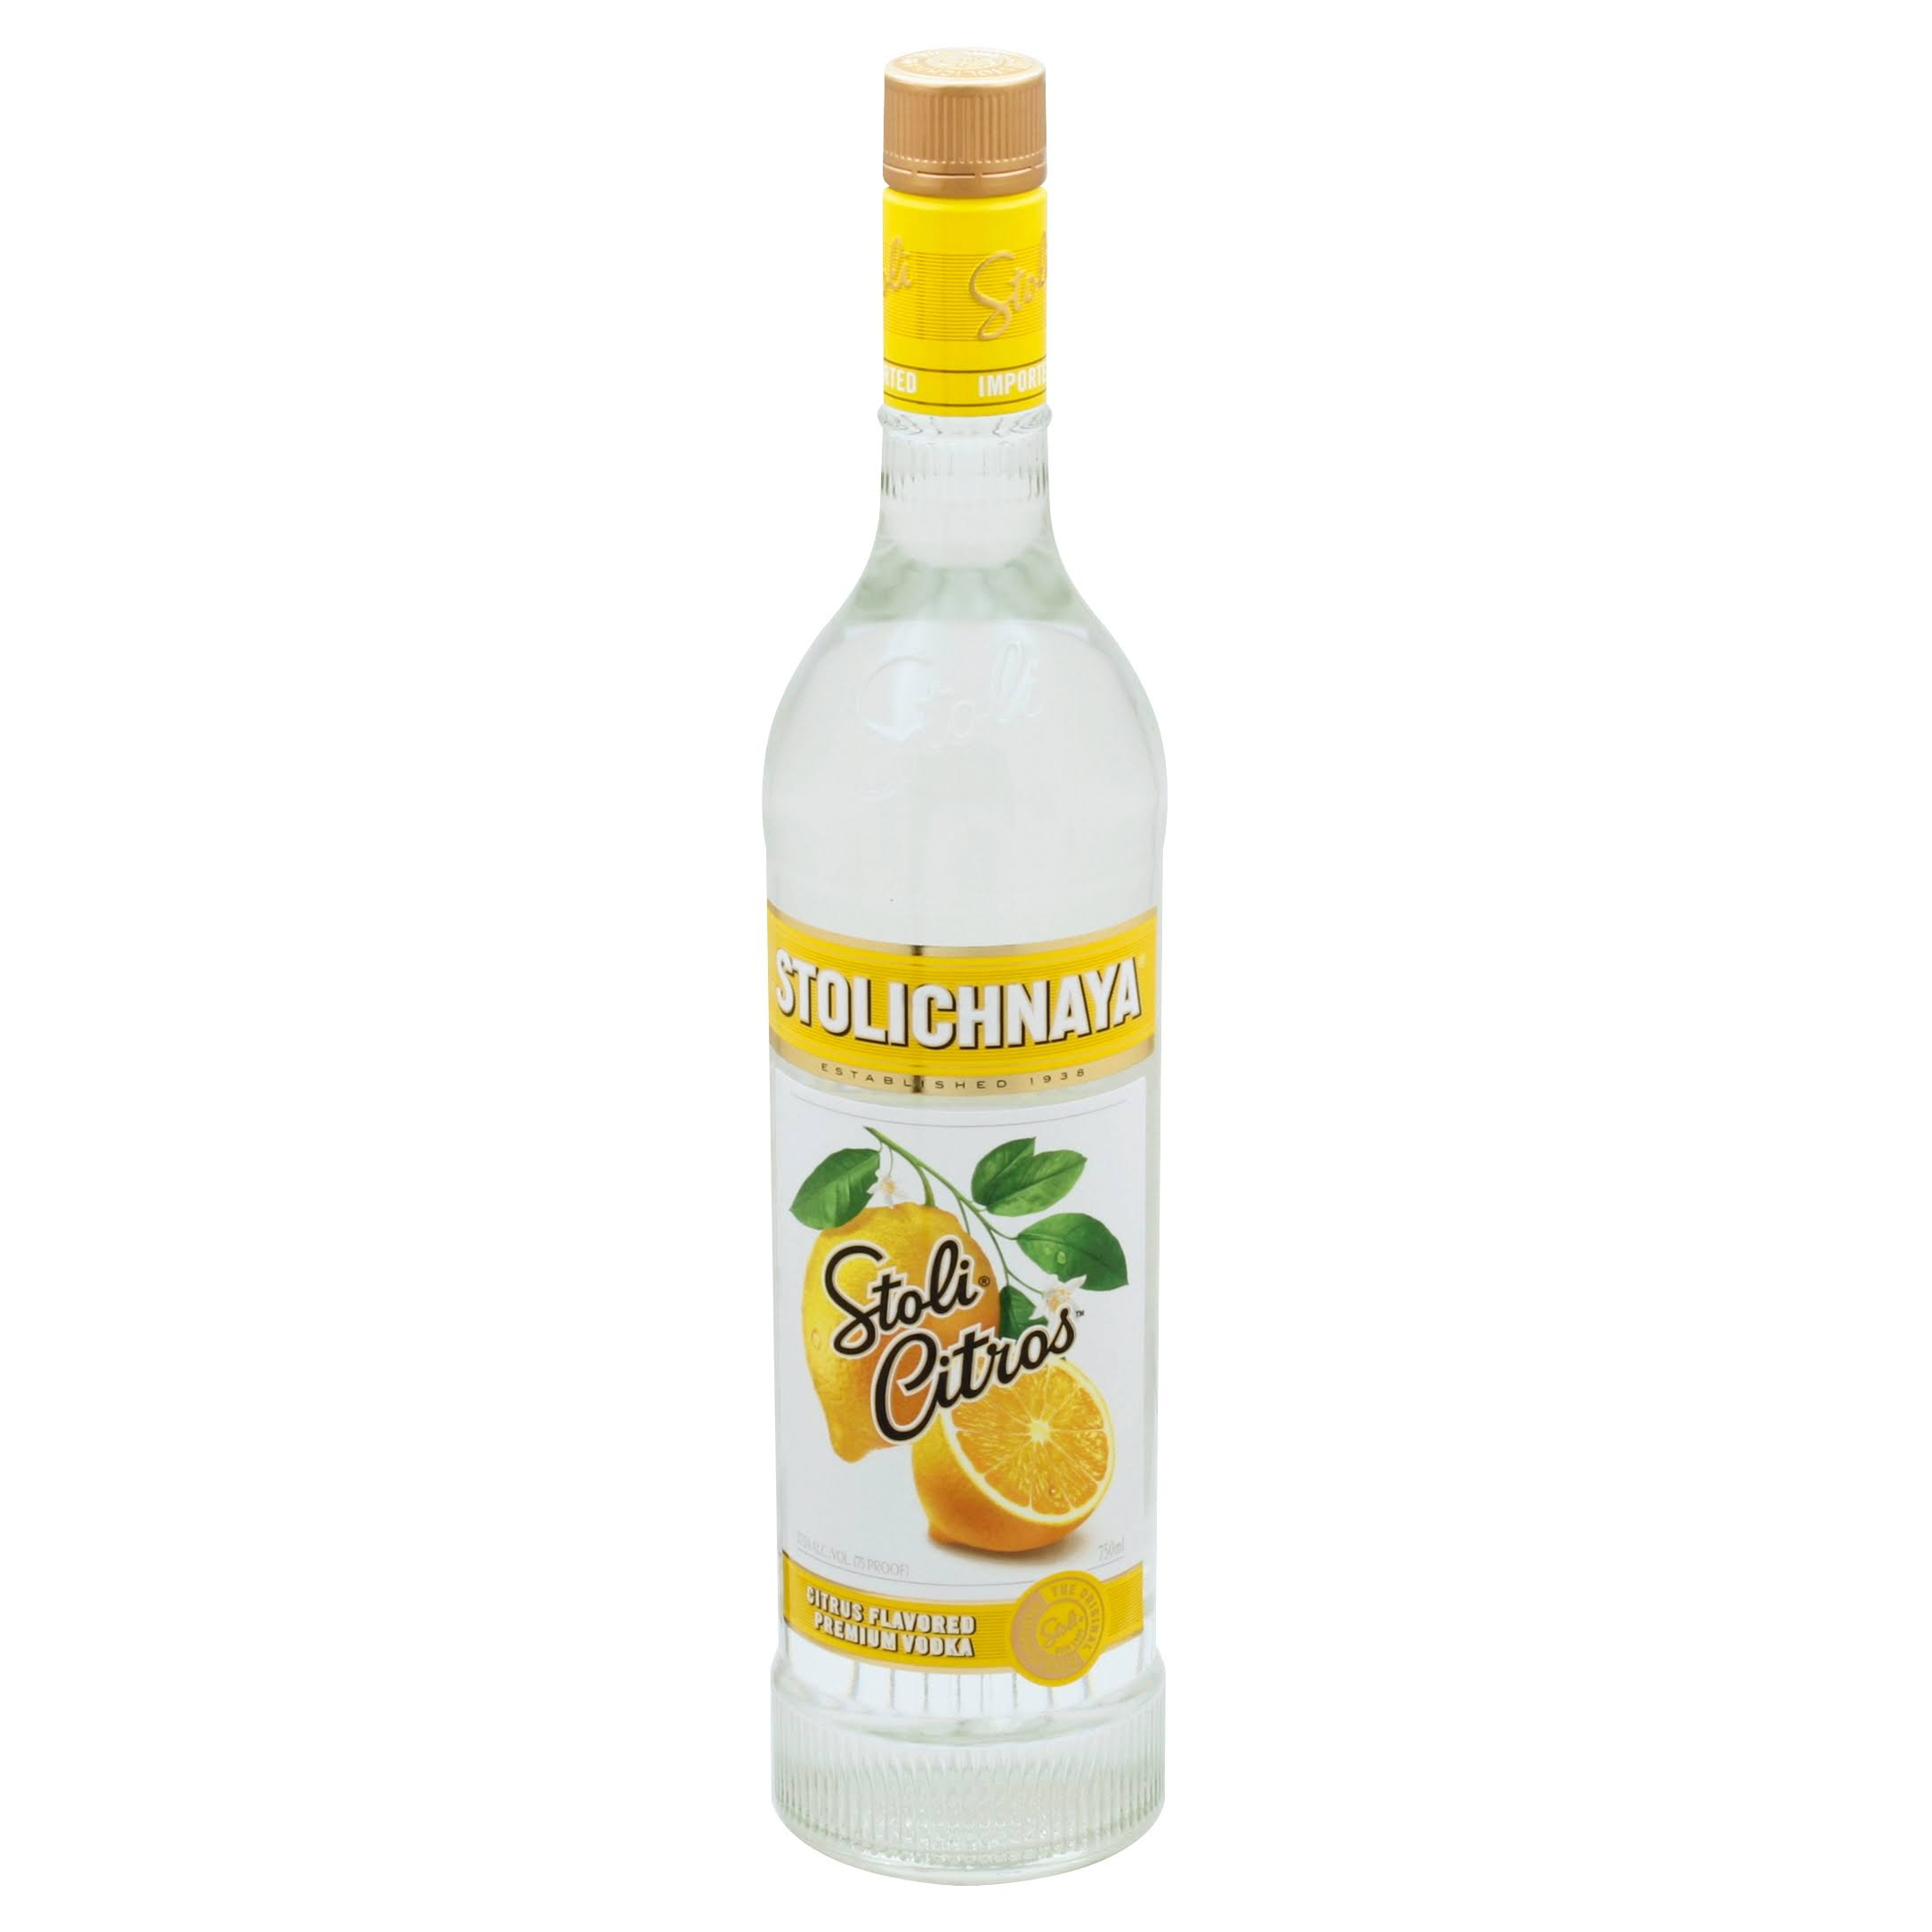 Stolichnaya Vodka, Premium, Citrus Flavored - 750 ml